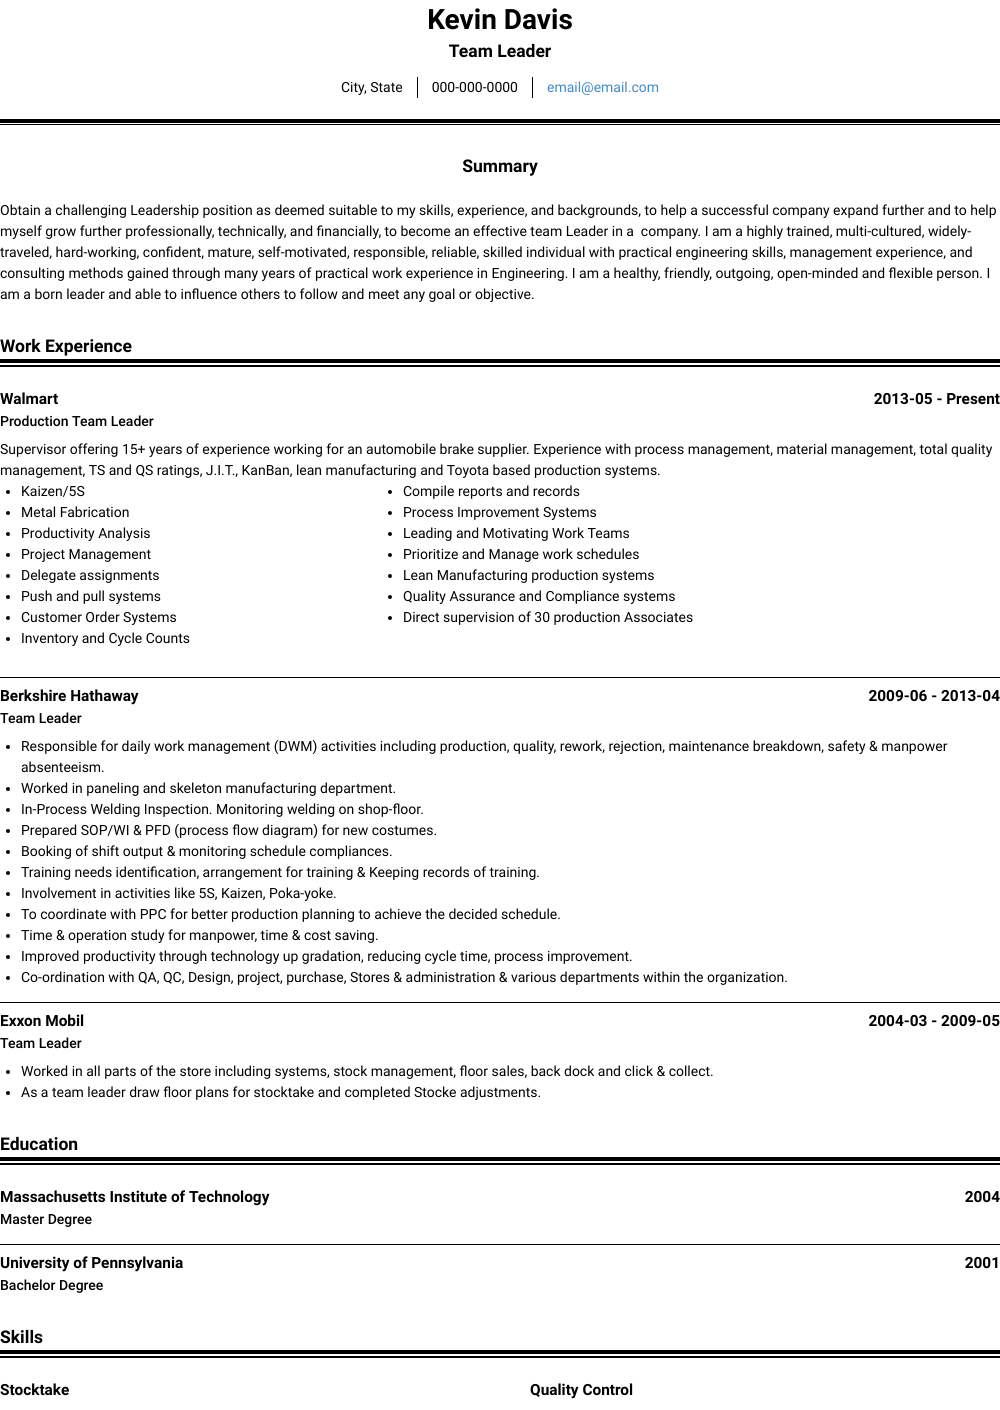 Team Leader Resume Sample and Template